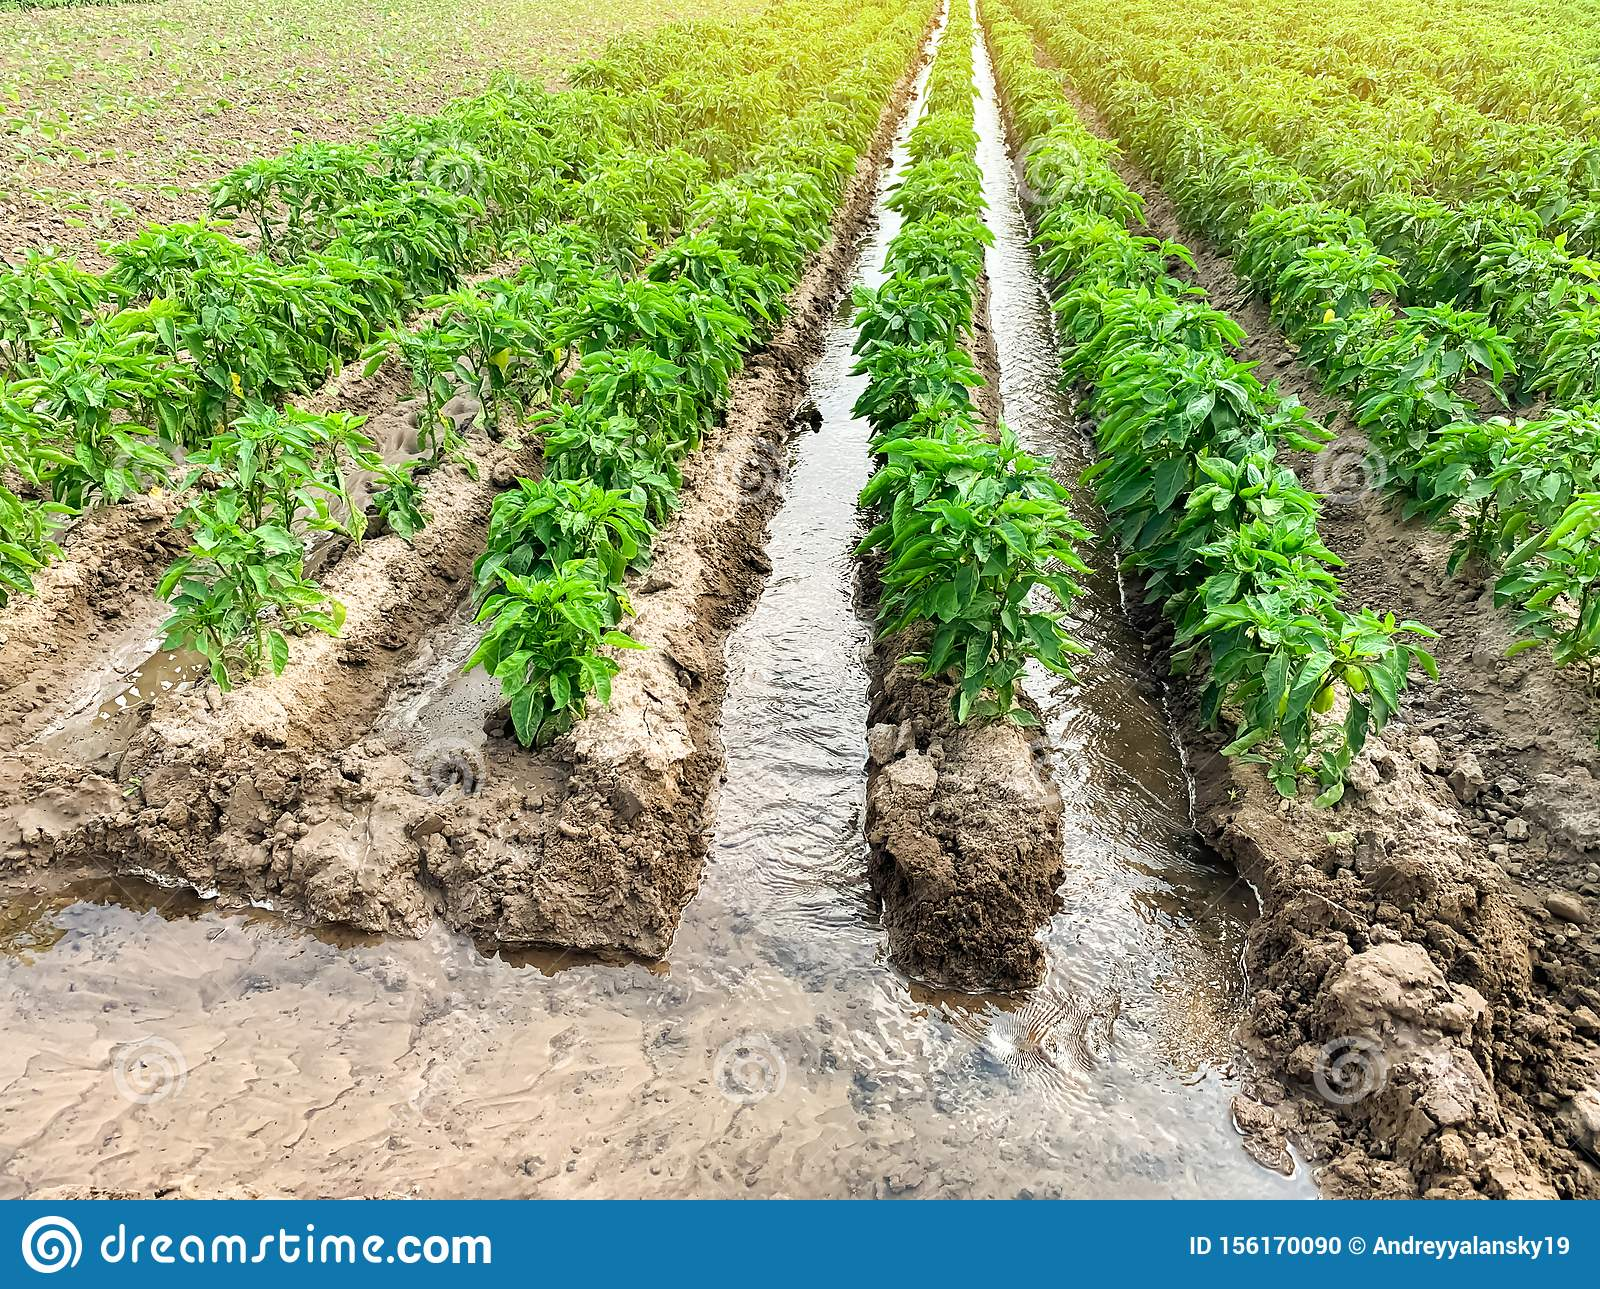 Irrigation of pepper plantations in the field. Traditional natural watering. Eco-friendly products. Agriculture and farmland.